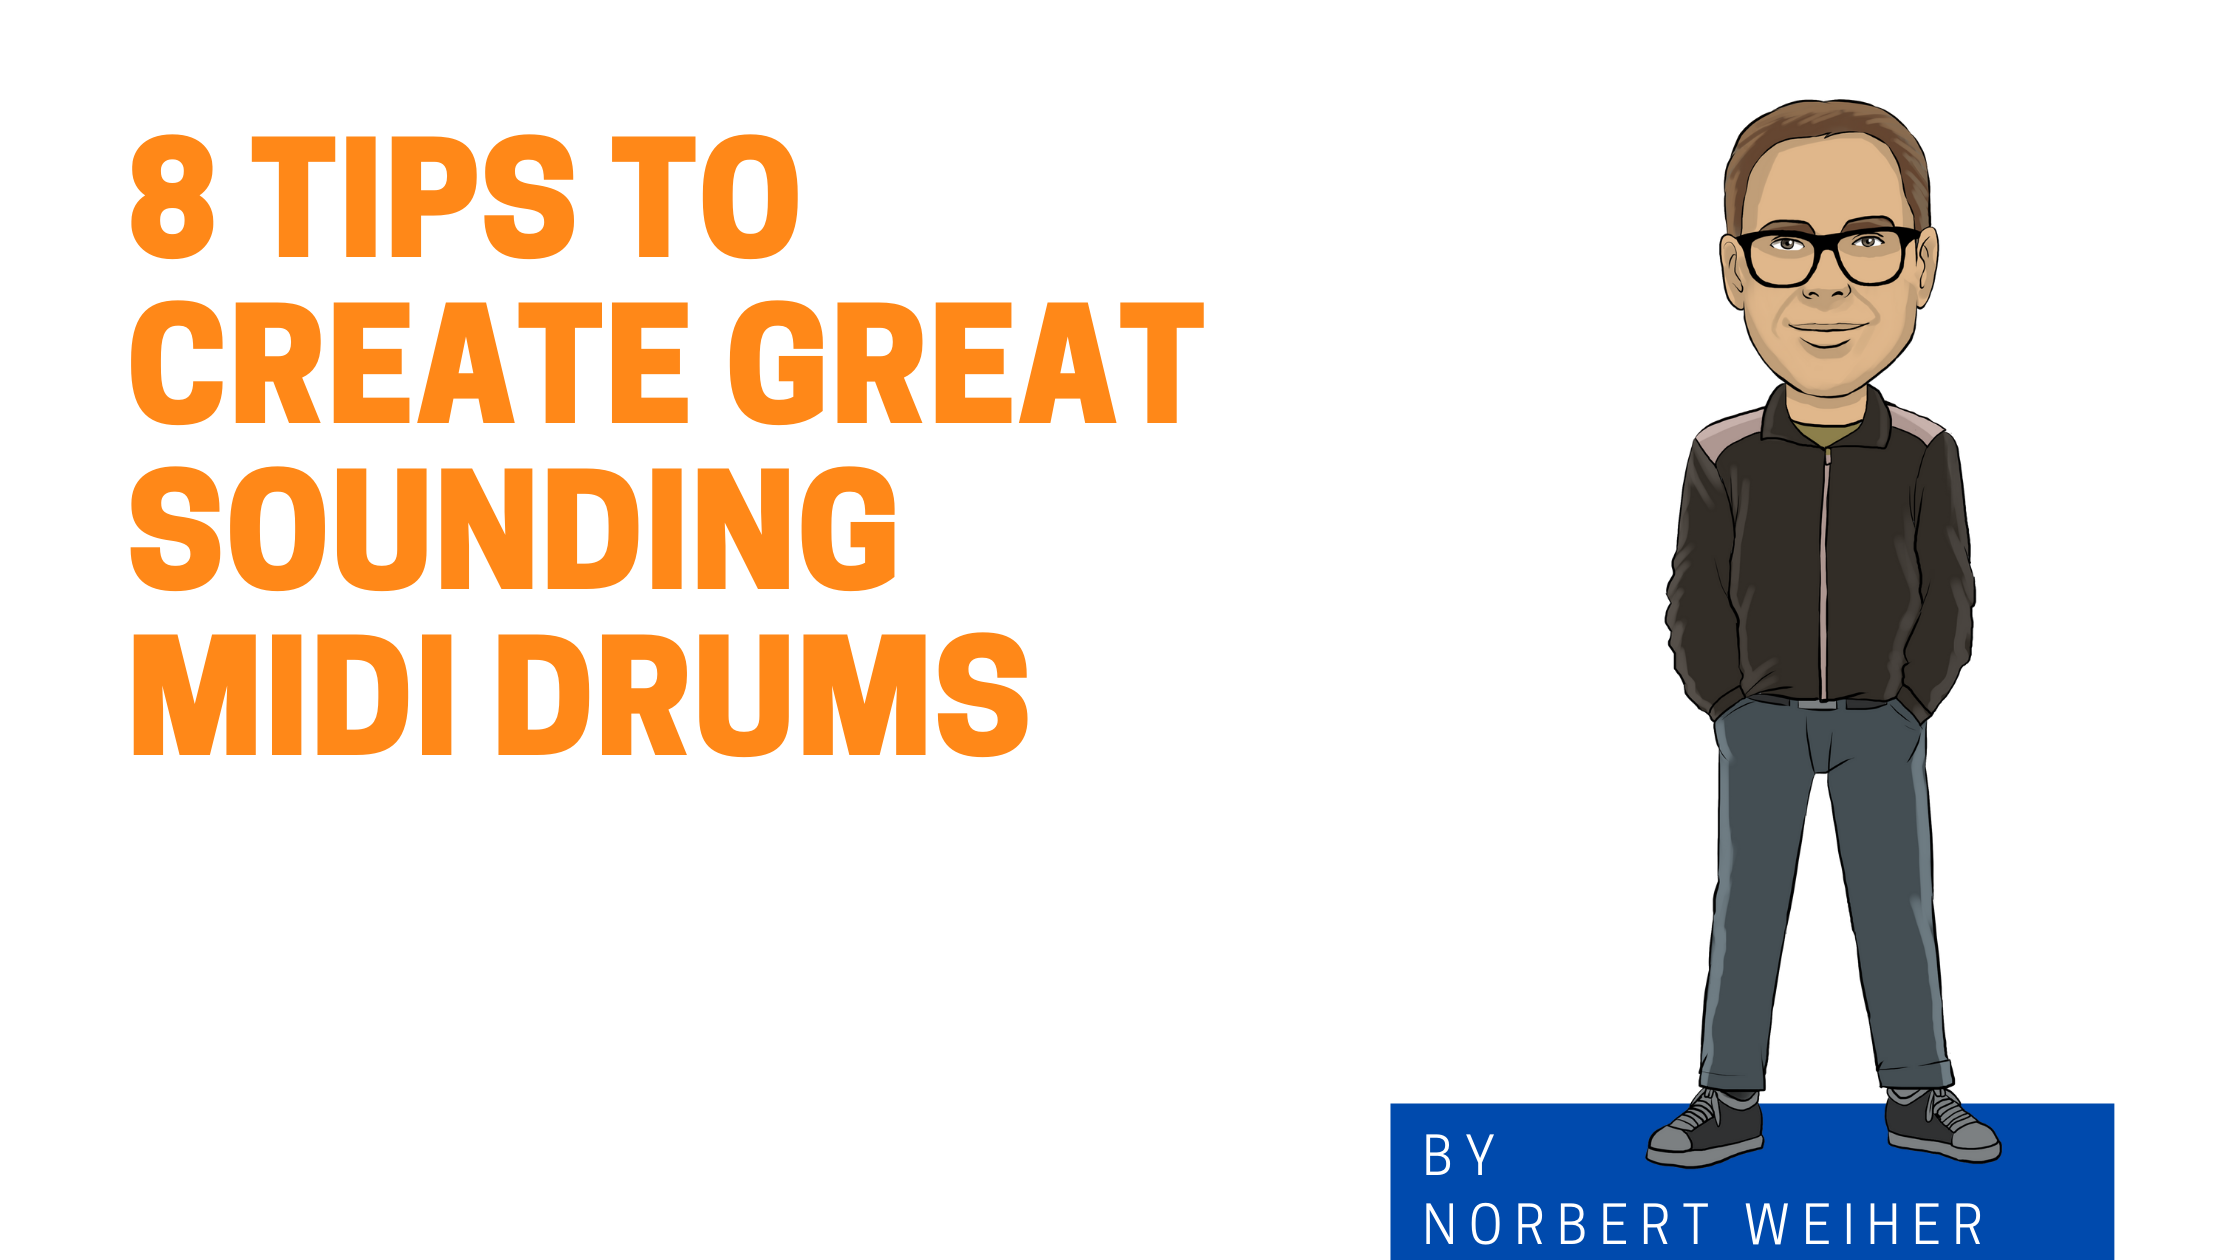 8 tips to create great sounding MIDI drums Graphic